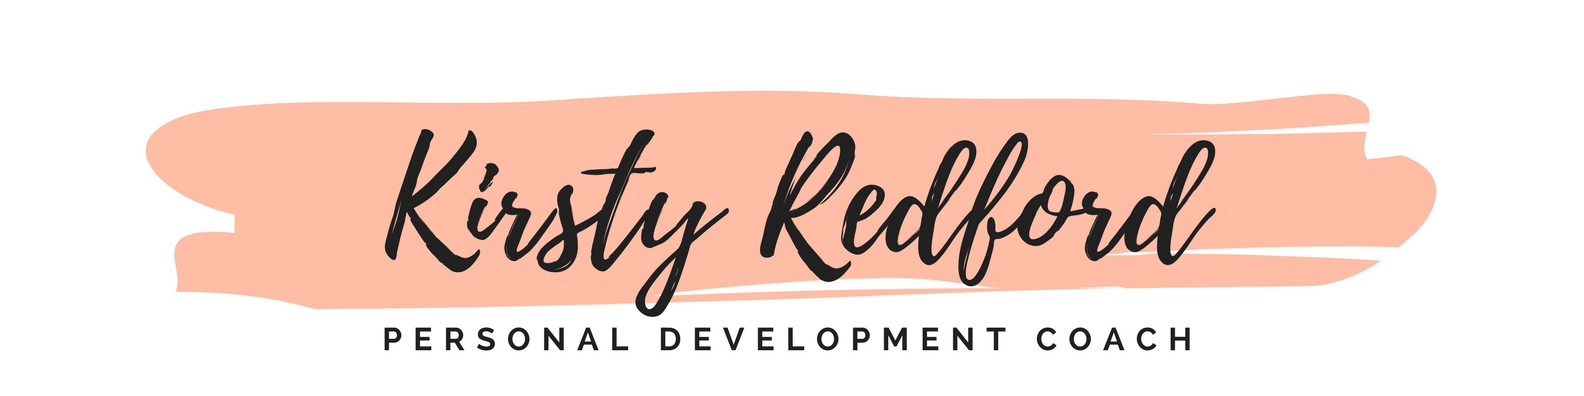 Kirsty Redford Coaching - Manchester, Lancashire  - 07720 923794 | ShowMeLocal.com